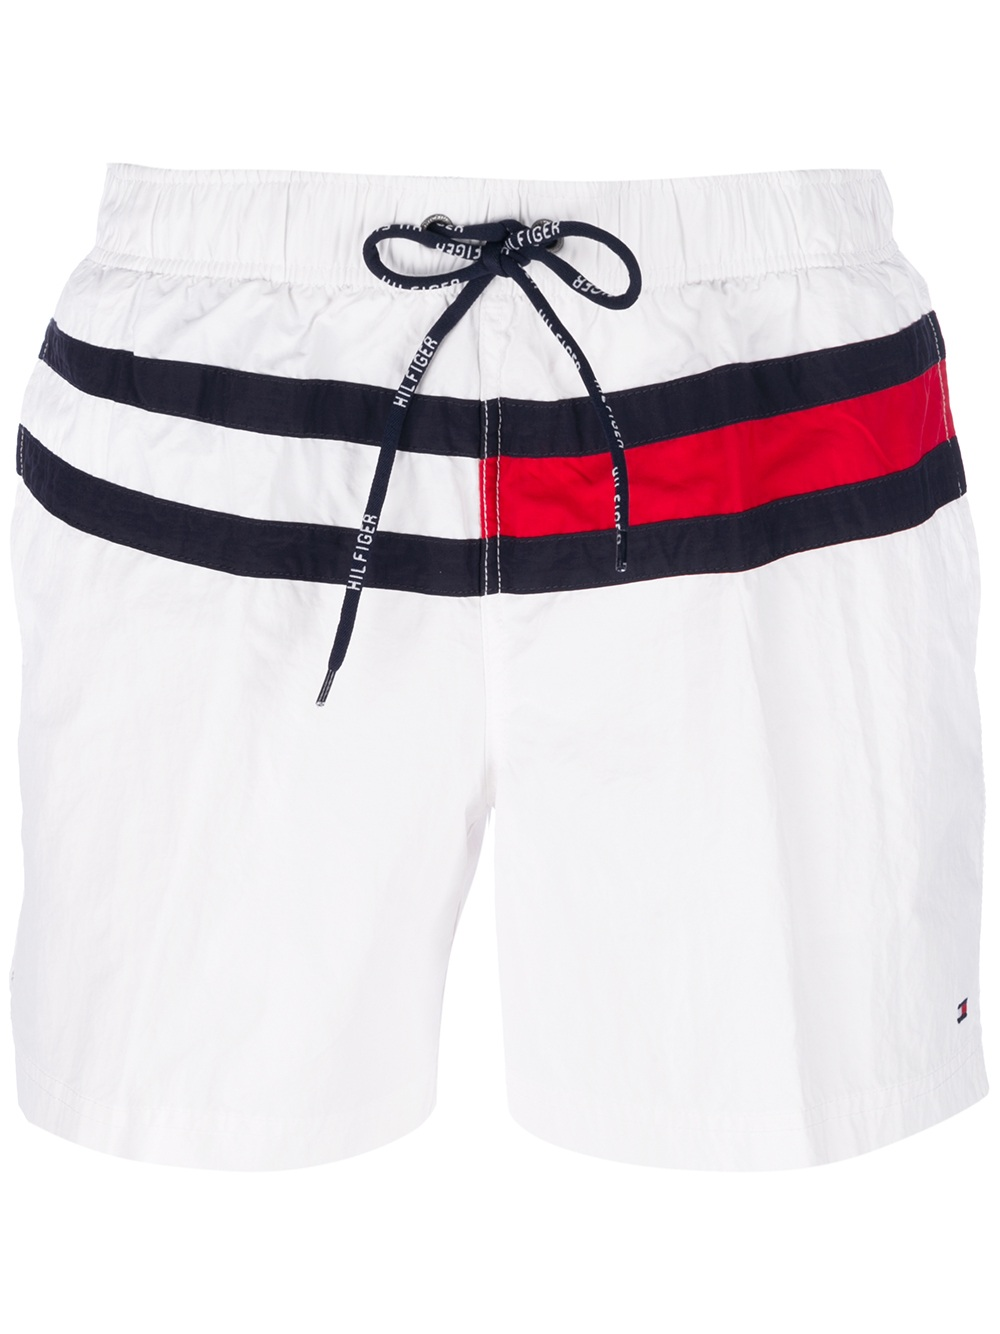 6b1cd673 Tommy Hilfiger Flag Swim Shorts in White for Men - Lyst